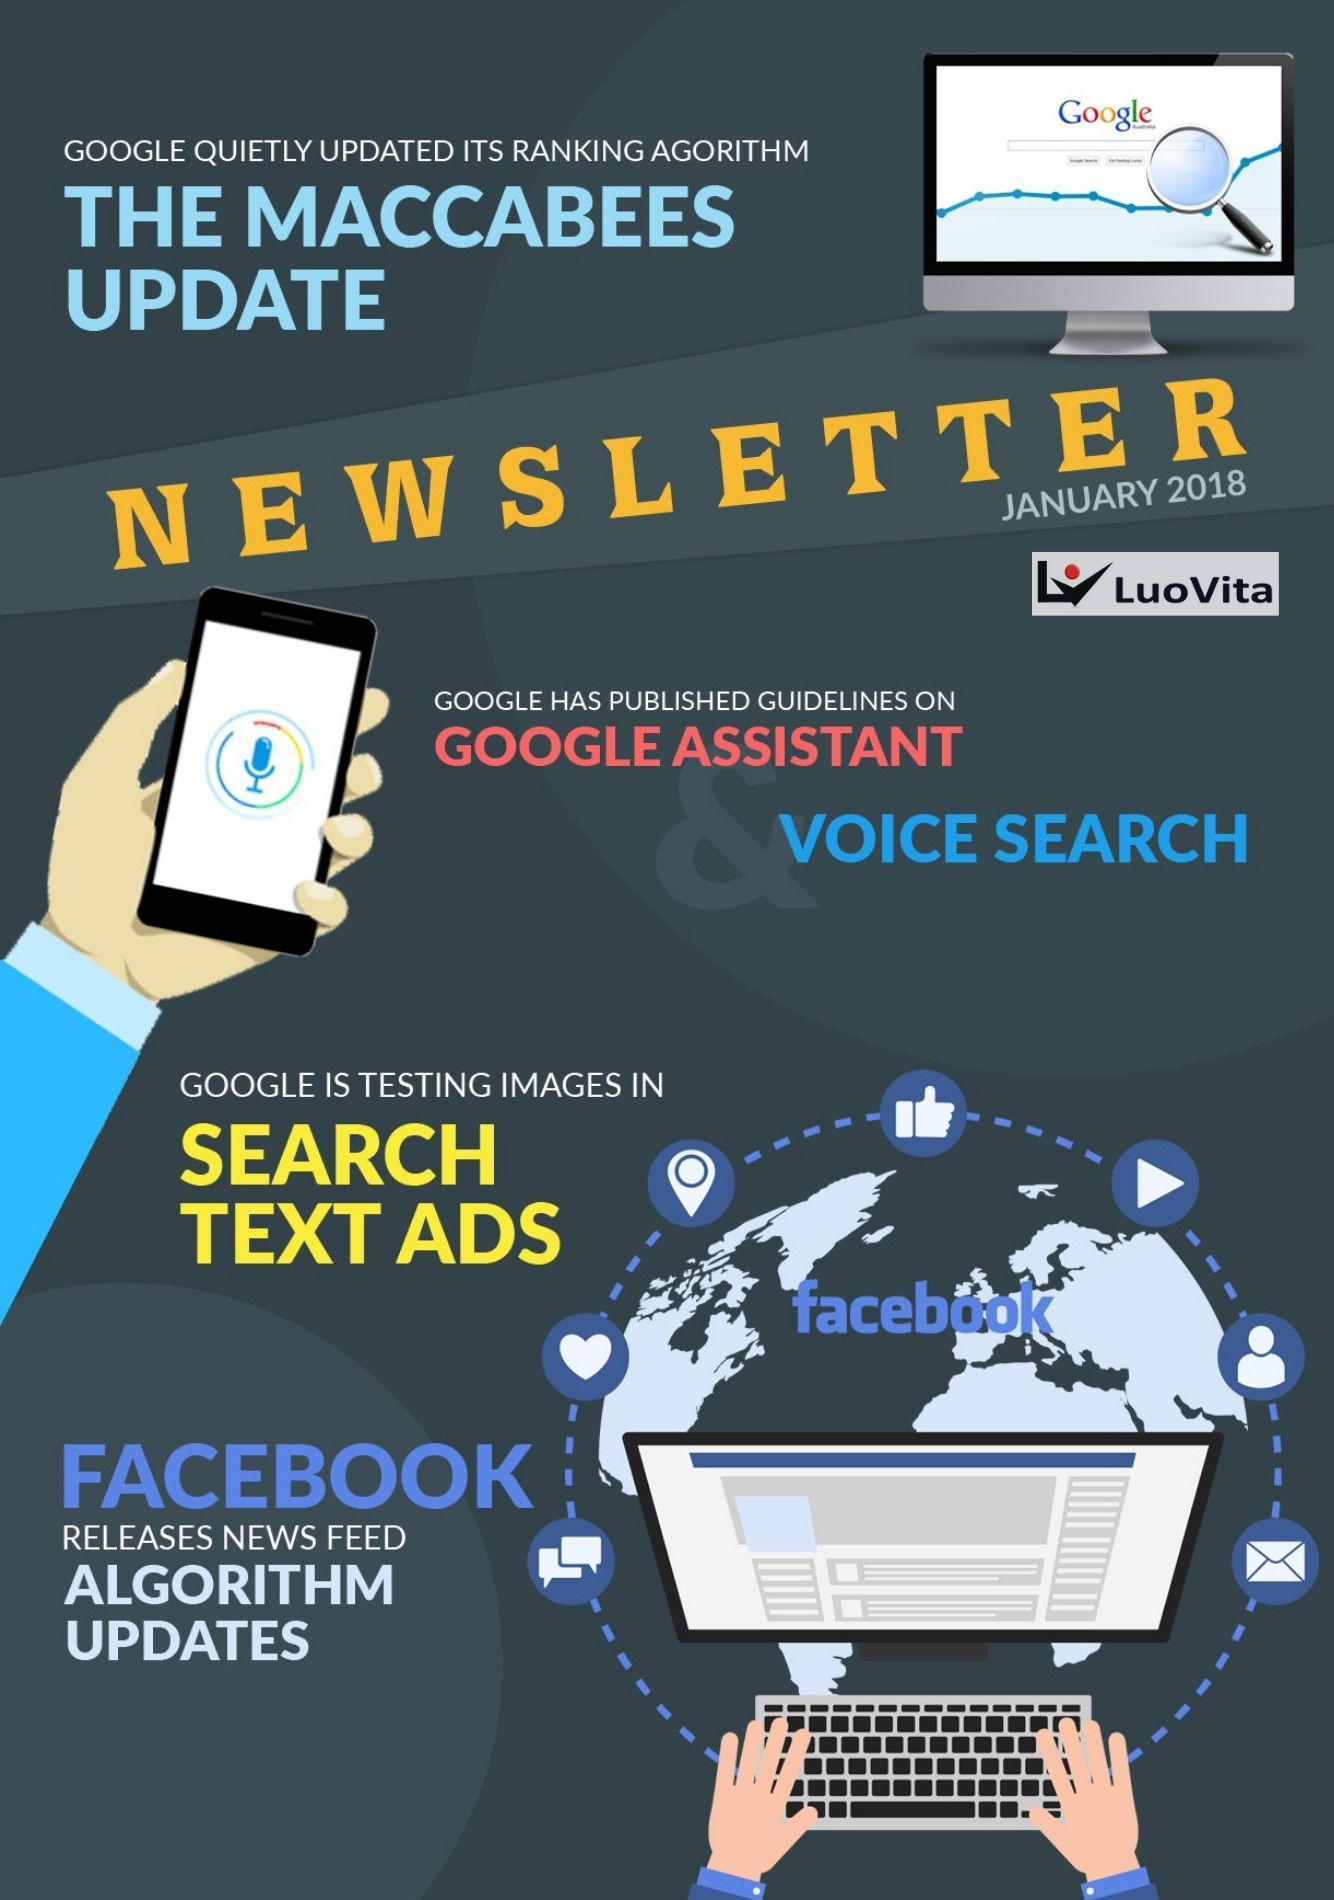 Google Has Published Guidelines on Google Assistant – News January 2018, FACEBOOK RELEASES NEWS FEED ALGORITHM UPDATES, GOOGLE IS TESTING IMAGES IN SEARCH TEXT ADS, GOOGLE HAS PUBLISHED GUIDELINES ON GOOGLE ASSISTANT AND VOICE SEARCH, DECEMBER 2017 WAS PRETTY BUSY FOR GOOGLE — HERE'S WHY, GOOGLE QUIETLY UPDATED ITS RANKING ALGORITHM — THE MACCABEES UPDATE, how to get positive reviews for your business, how to make big money online, how to earn money online, check google rank, how to promote business using google, what is digital marketing, strategies to promote business online, tips to become succecssful entrepreneurs, best online marketing course, free online marketing course, free online marketing training, how to market my business in social media,tips to become successful entrepreneurs, pinterest account creation, social media marketing benefits, what is digital marketing, strategies to promote business online, google analytics, best marketing courses, online marketing articles, online marketing courses, online business idea, keyword research tool free, ow to start online marketing, social media marketing, facebook marketing, instagram marketing, what is smo, smo tools, social media campaign ideas, website traffic checker, facebook ads, instagram ads, auto likes free, how can i get facebook likes, how to increase facebook likes, how to promote in facebook